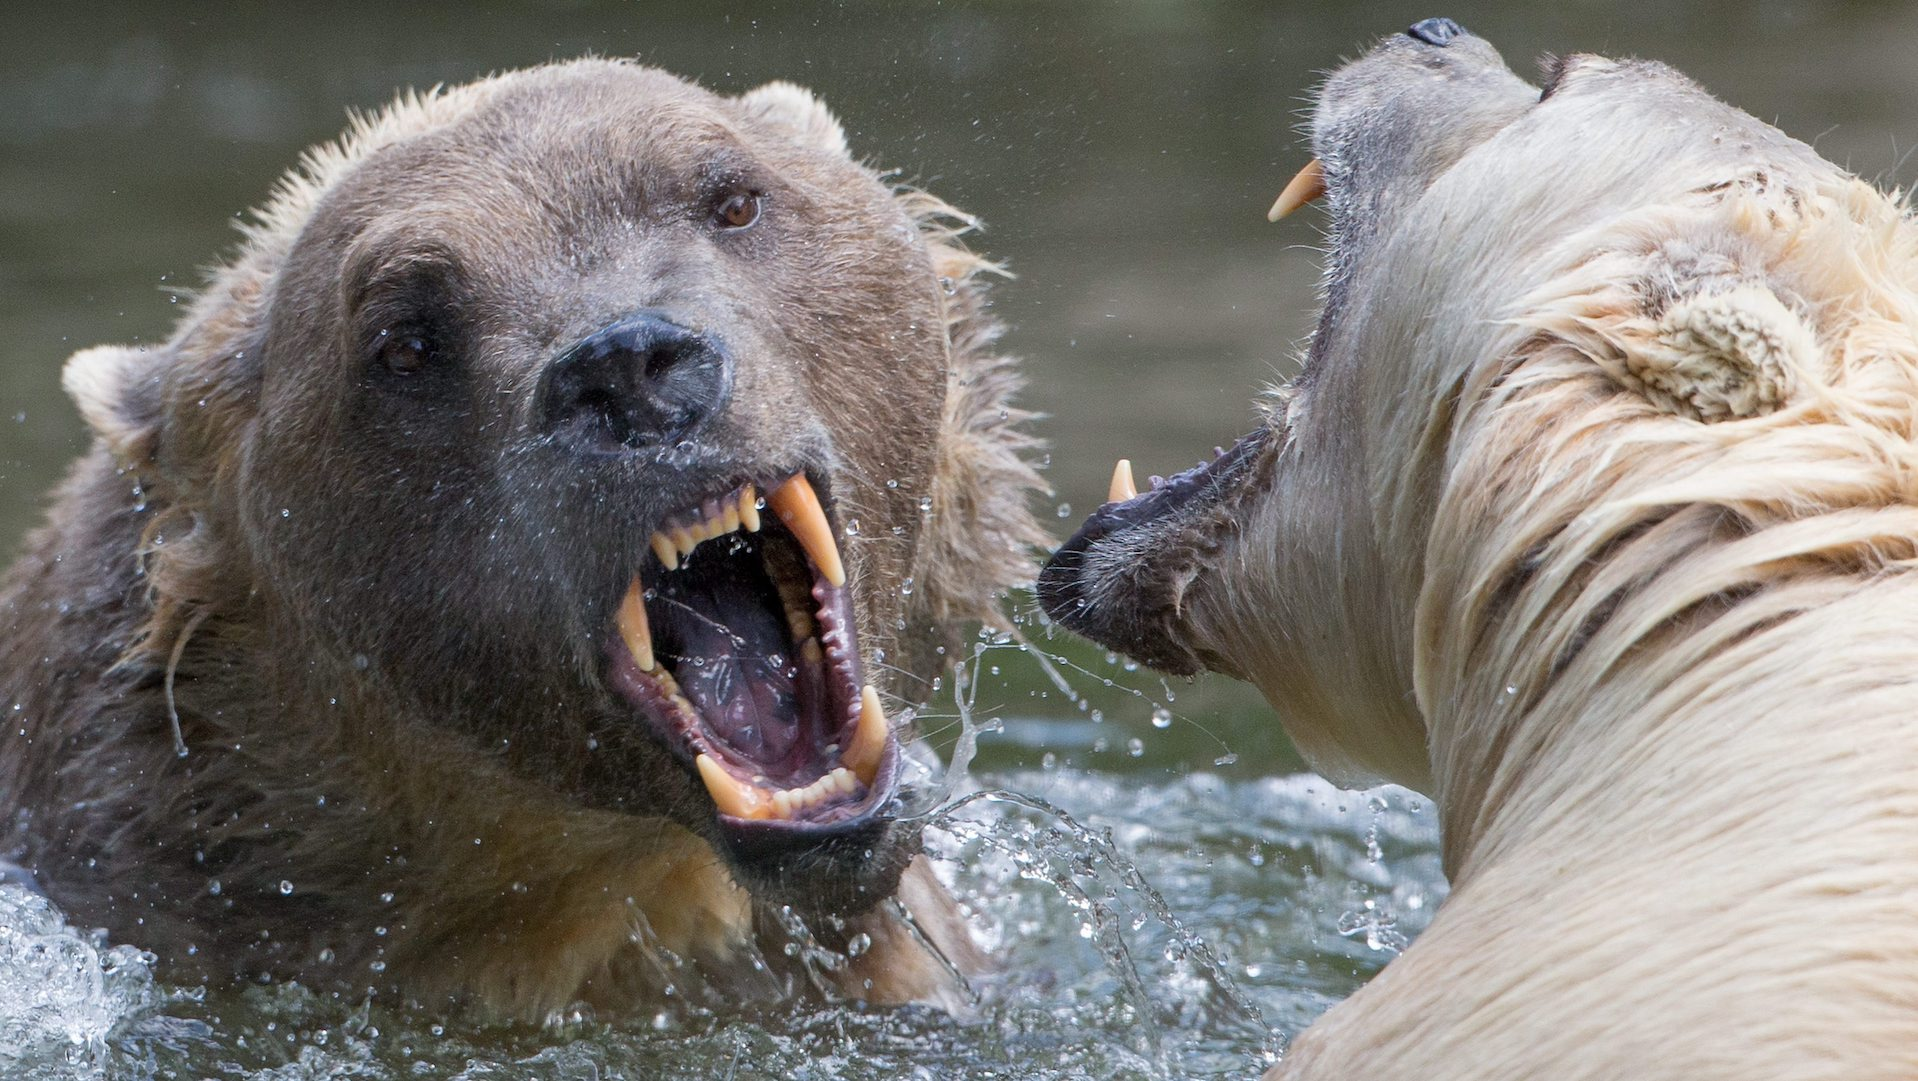 The true story of two fatal grizzly bear attacks that changed our relationship with wildlife